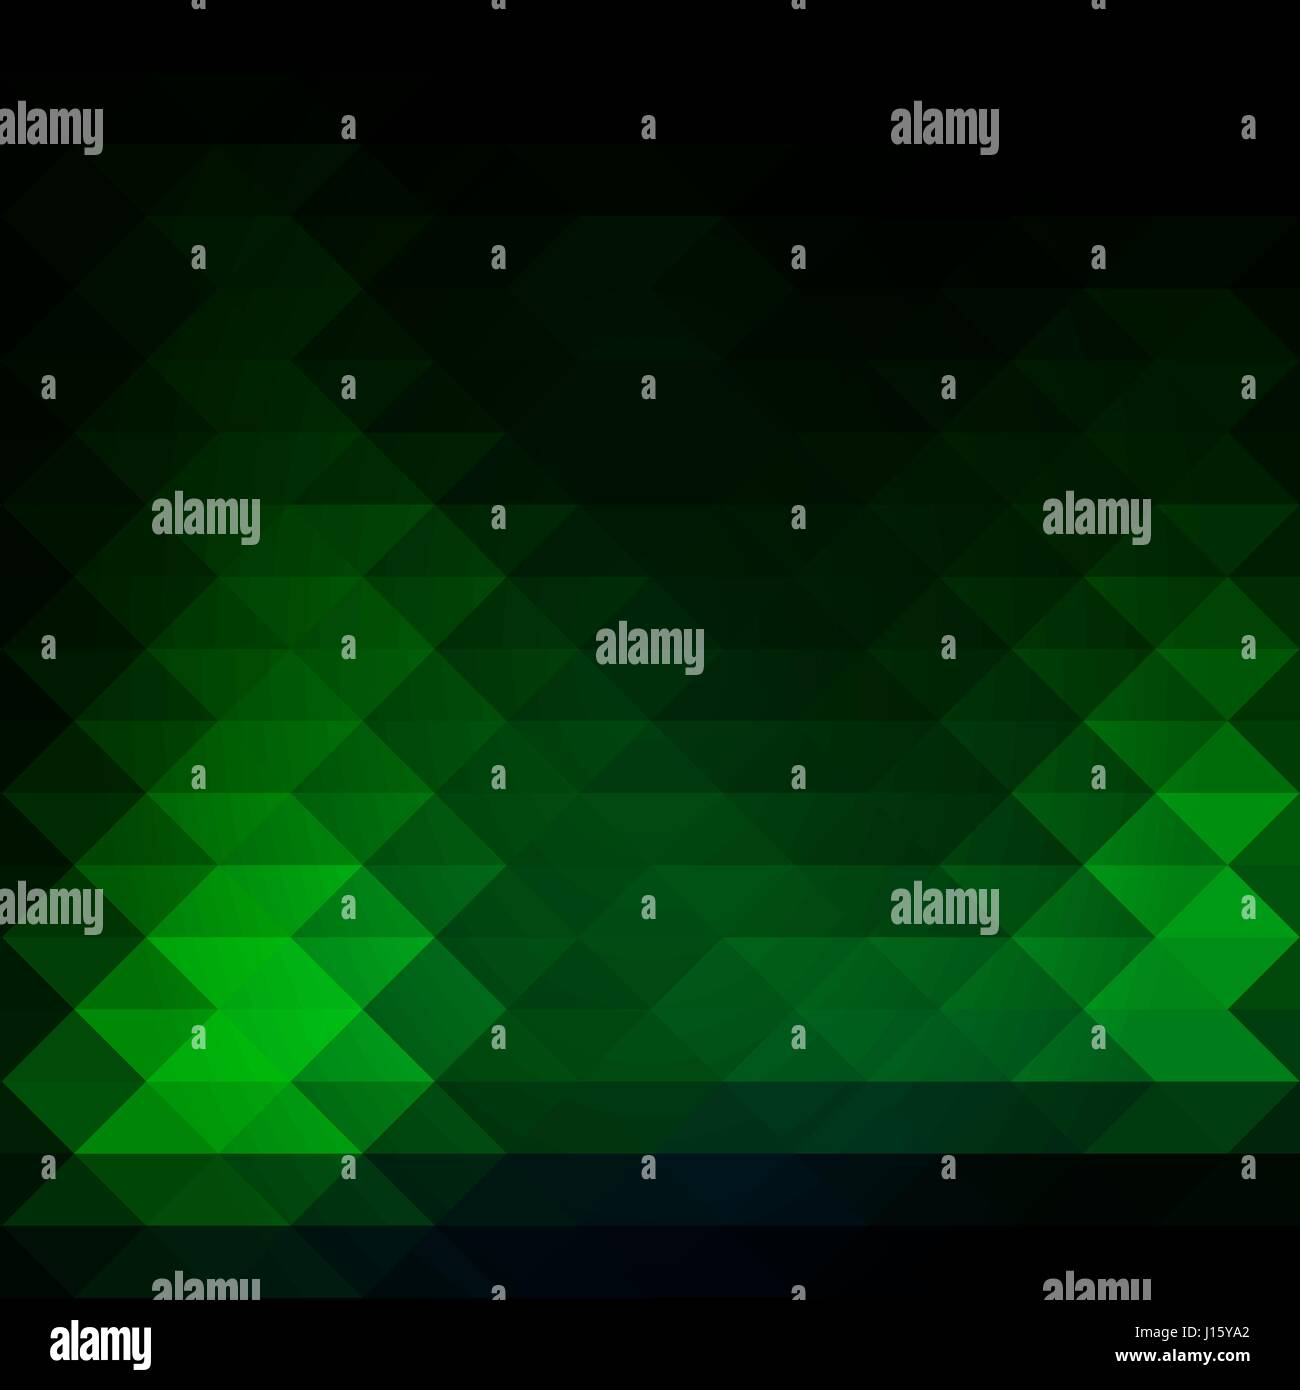 Glowing Neon Green Abstract Geometric Background With Rows